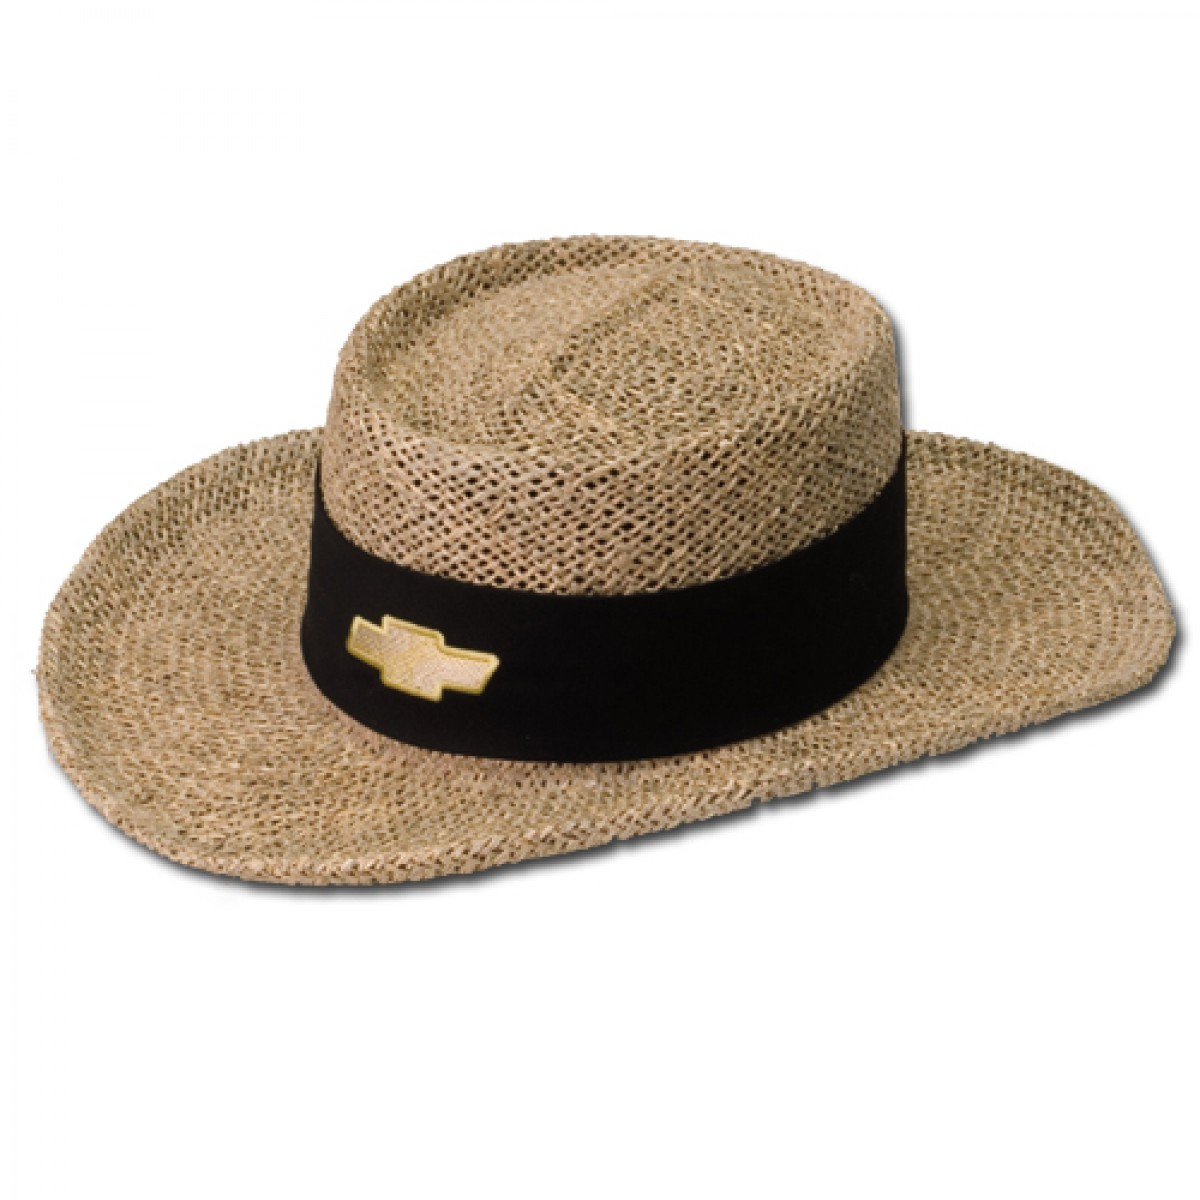 Hossrods Com Natural Straw Hat With Chevy Bowtie Hot